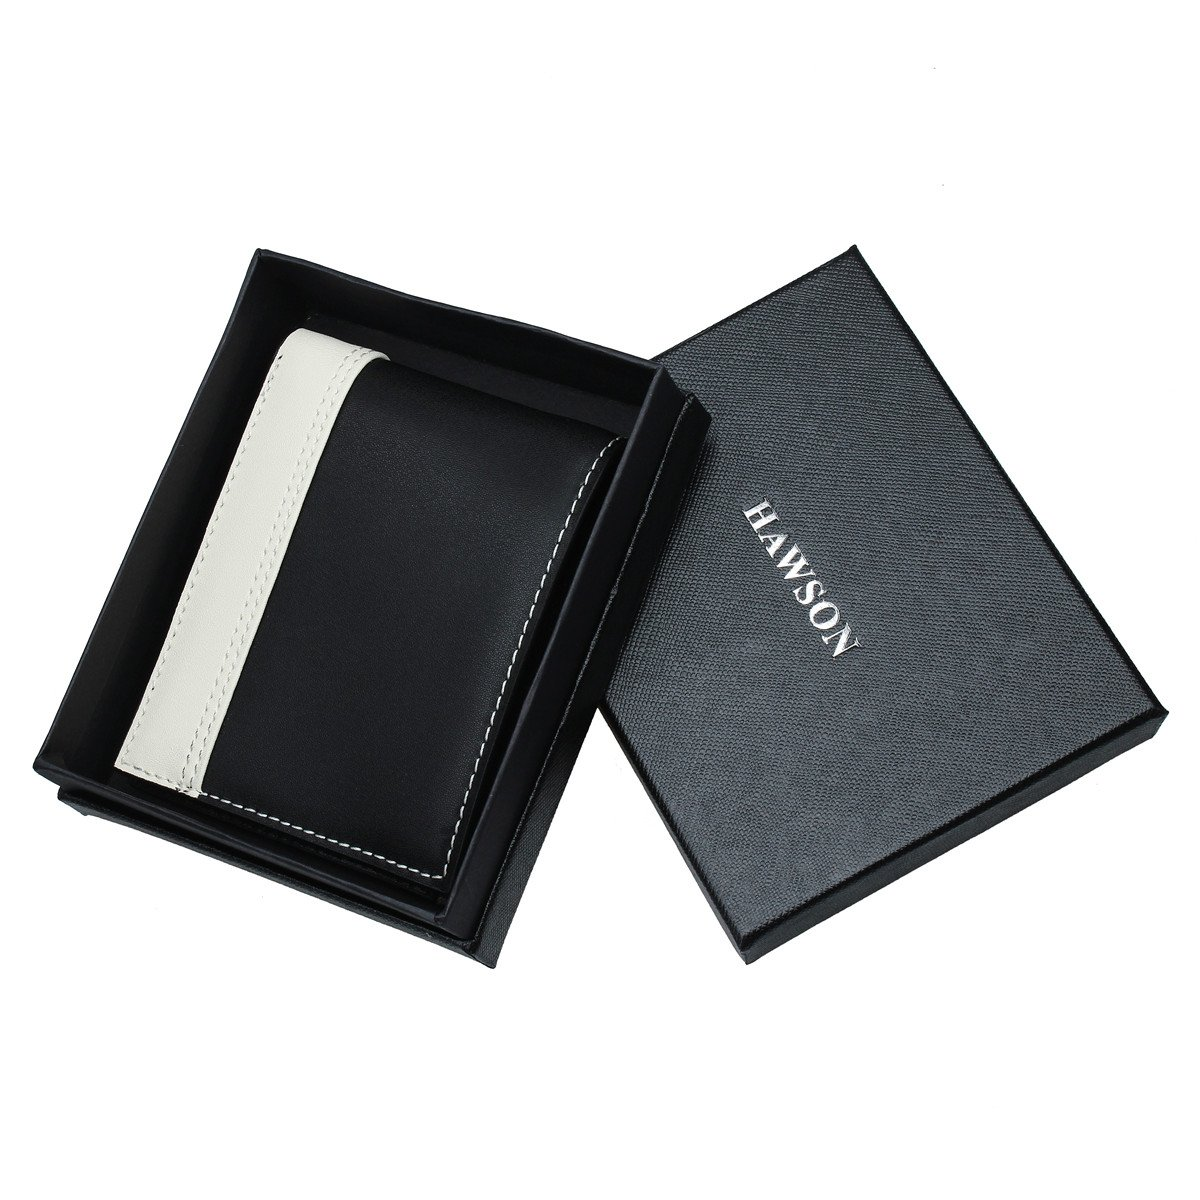 RFID Blocking Bifold Leather Wallet for Men - Best Gifts for Business Anniversary by HAWSON (Image #7)